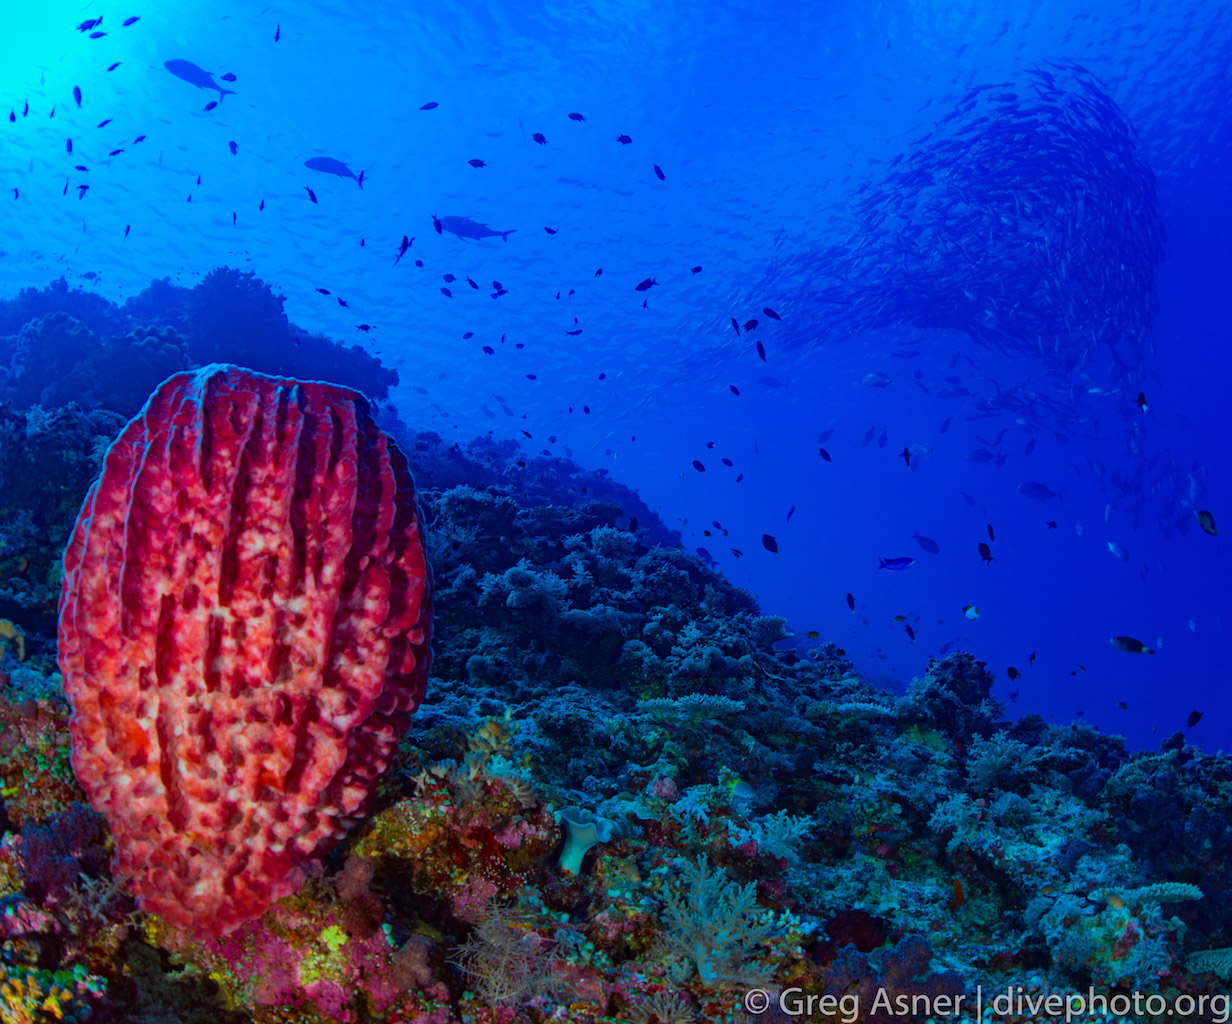 greg_asner_spratly_islands_5056